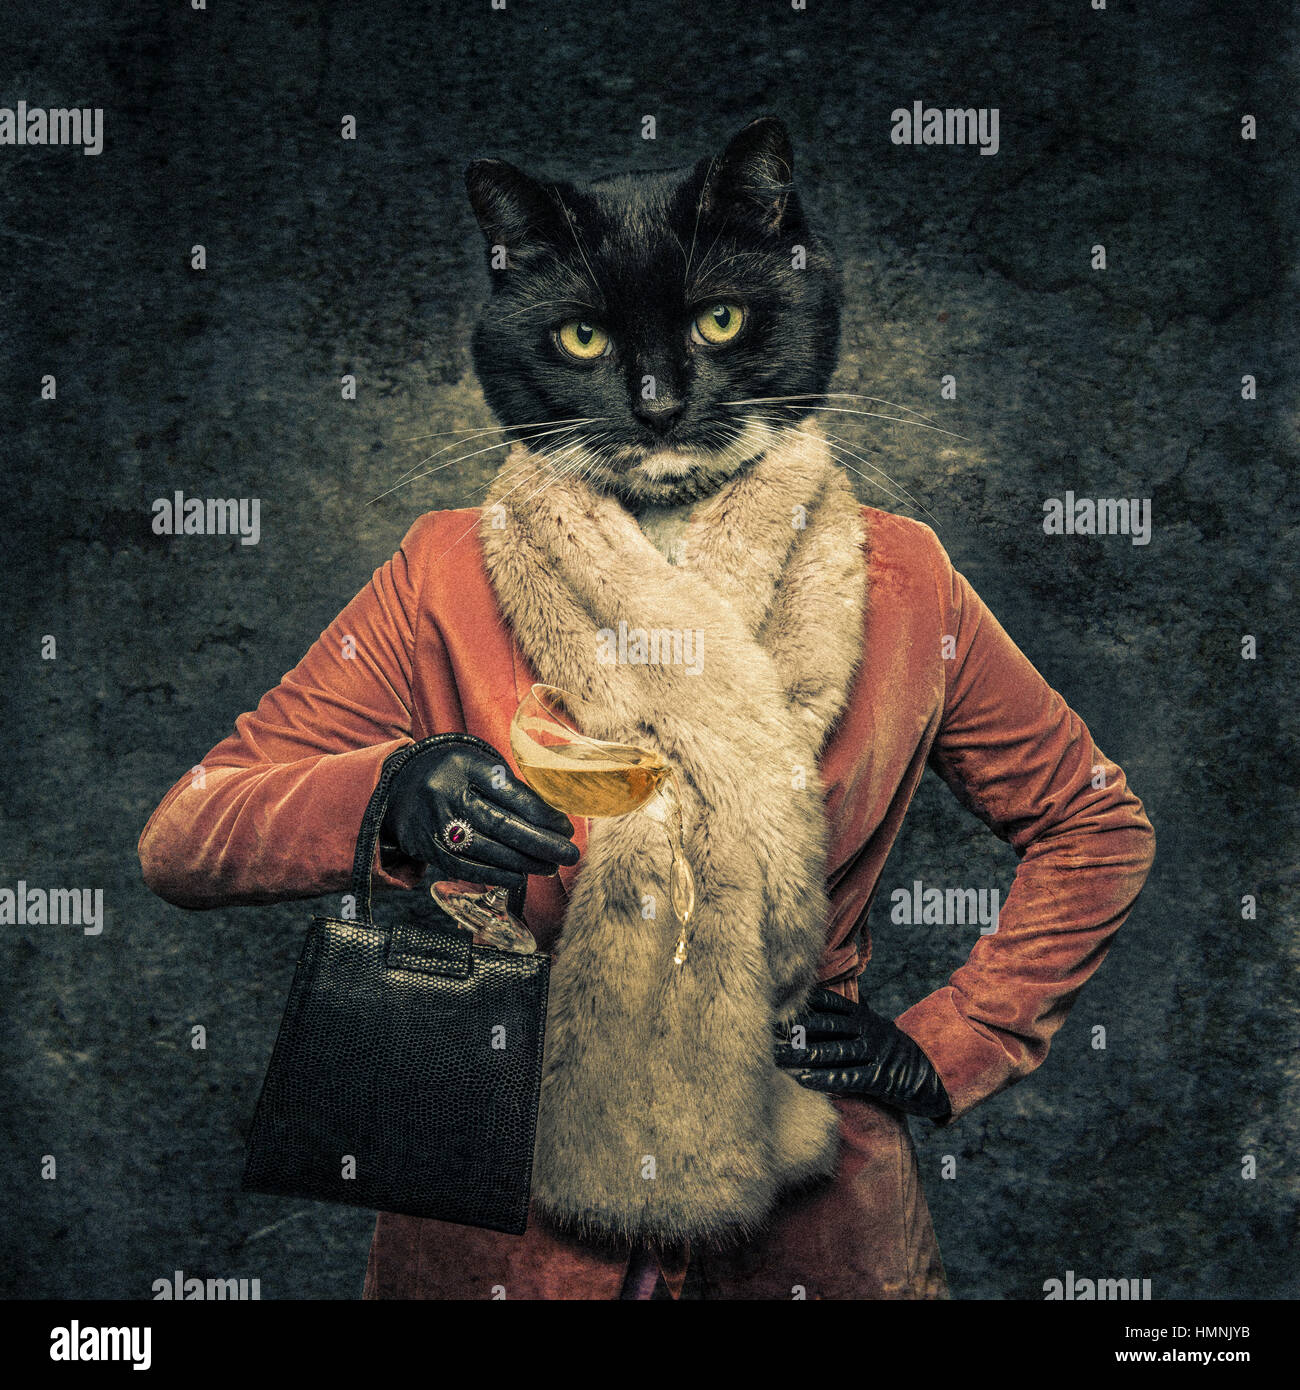 Human body with cat head hybrid creature holding drink and handbag - Stock Image